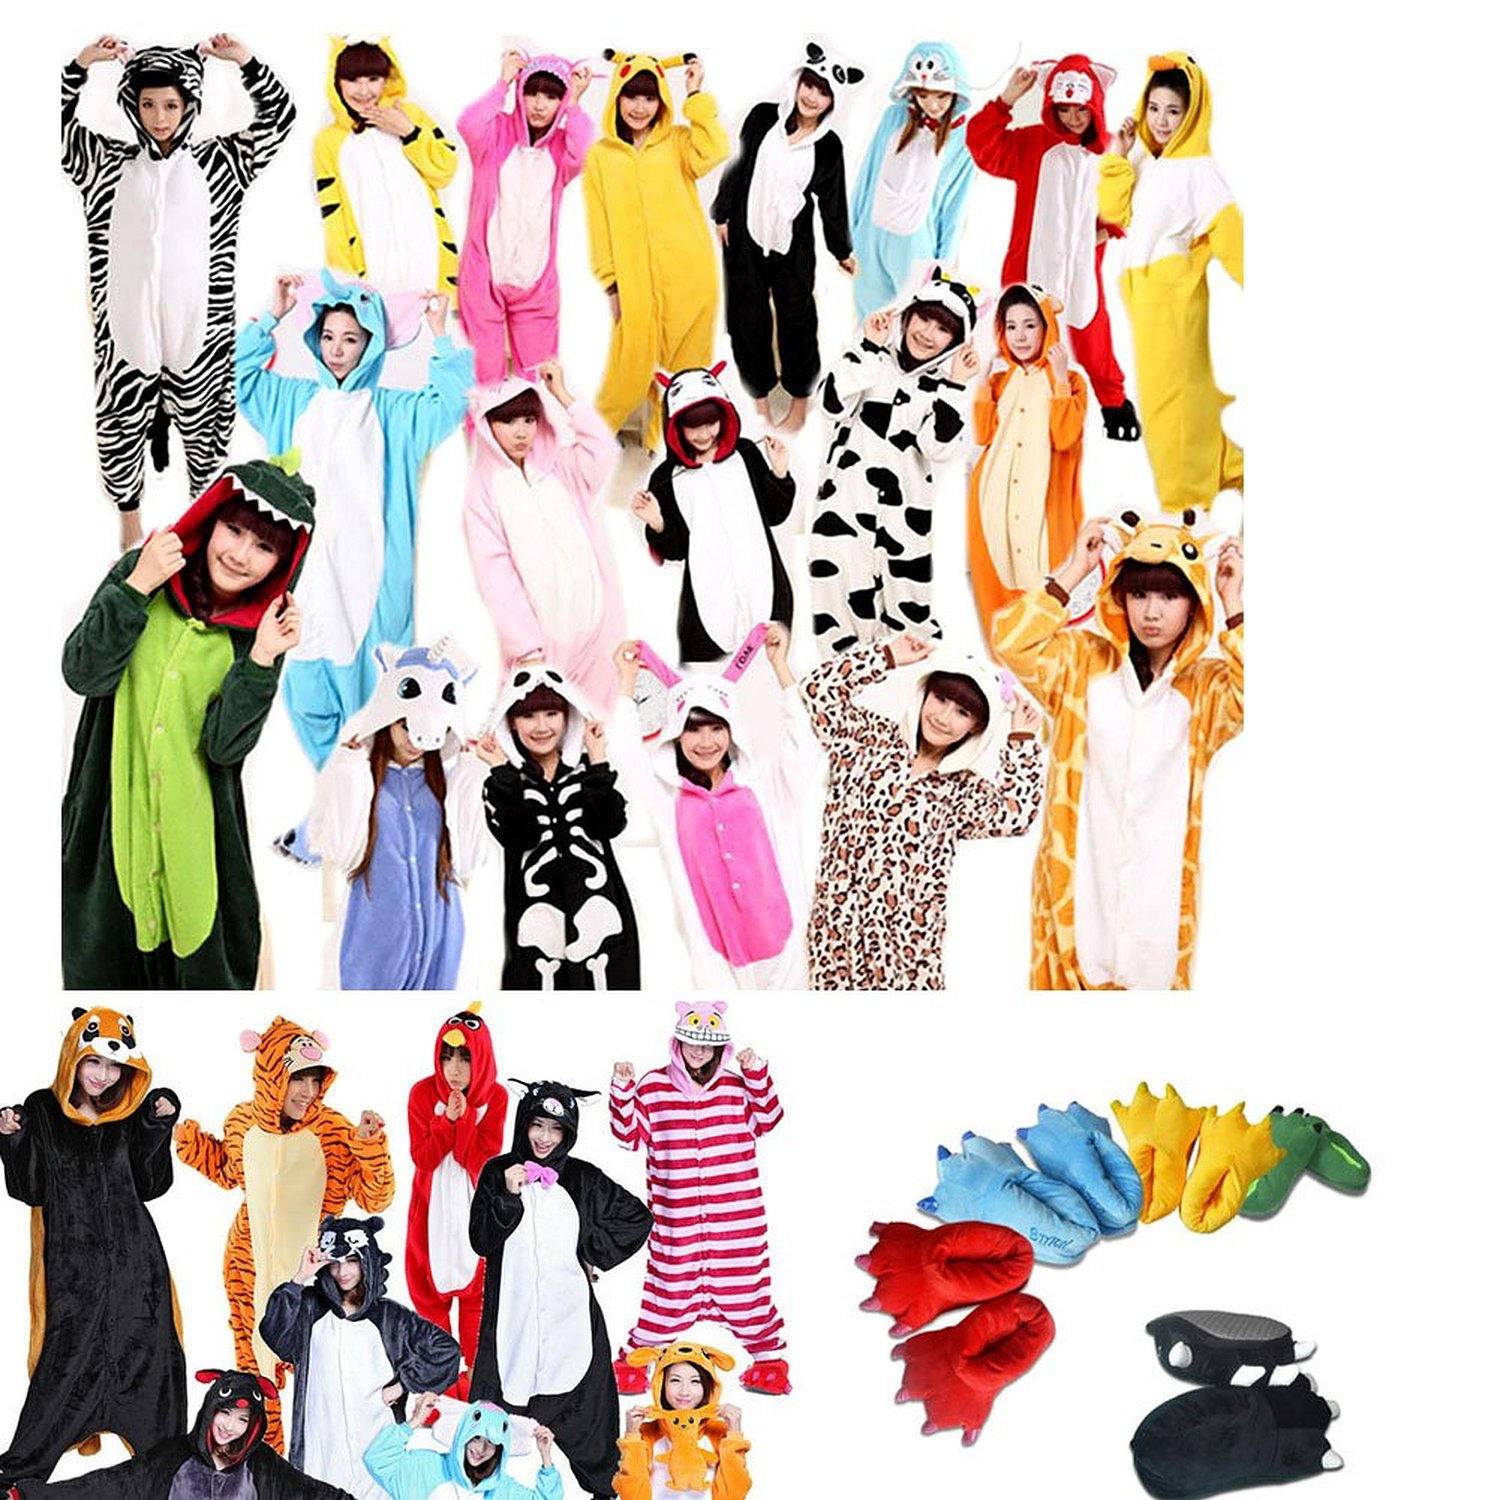 Amazon.com: Janecrafts New Kigurumi Pajamas Anime Cosplay Costume Unisex Adult Onesie Dress: Clothing